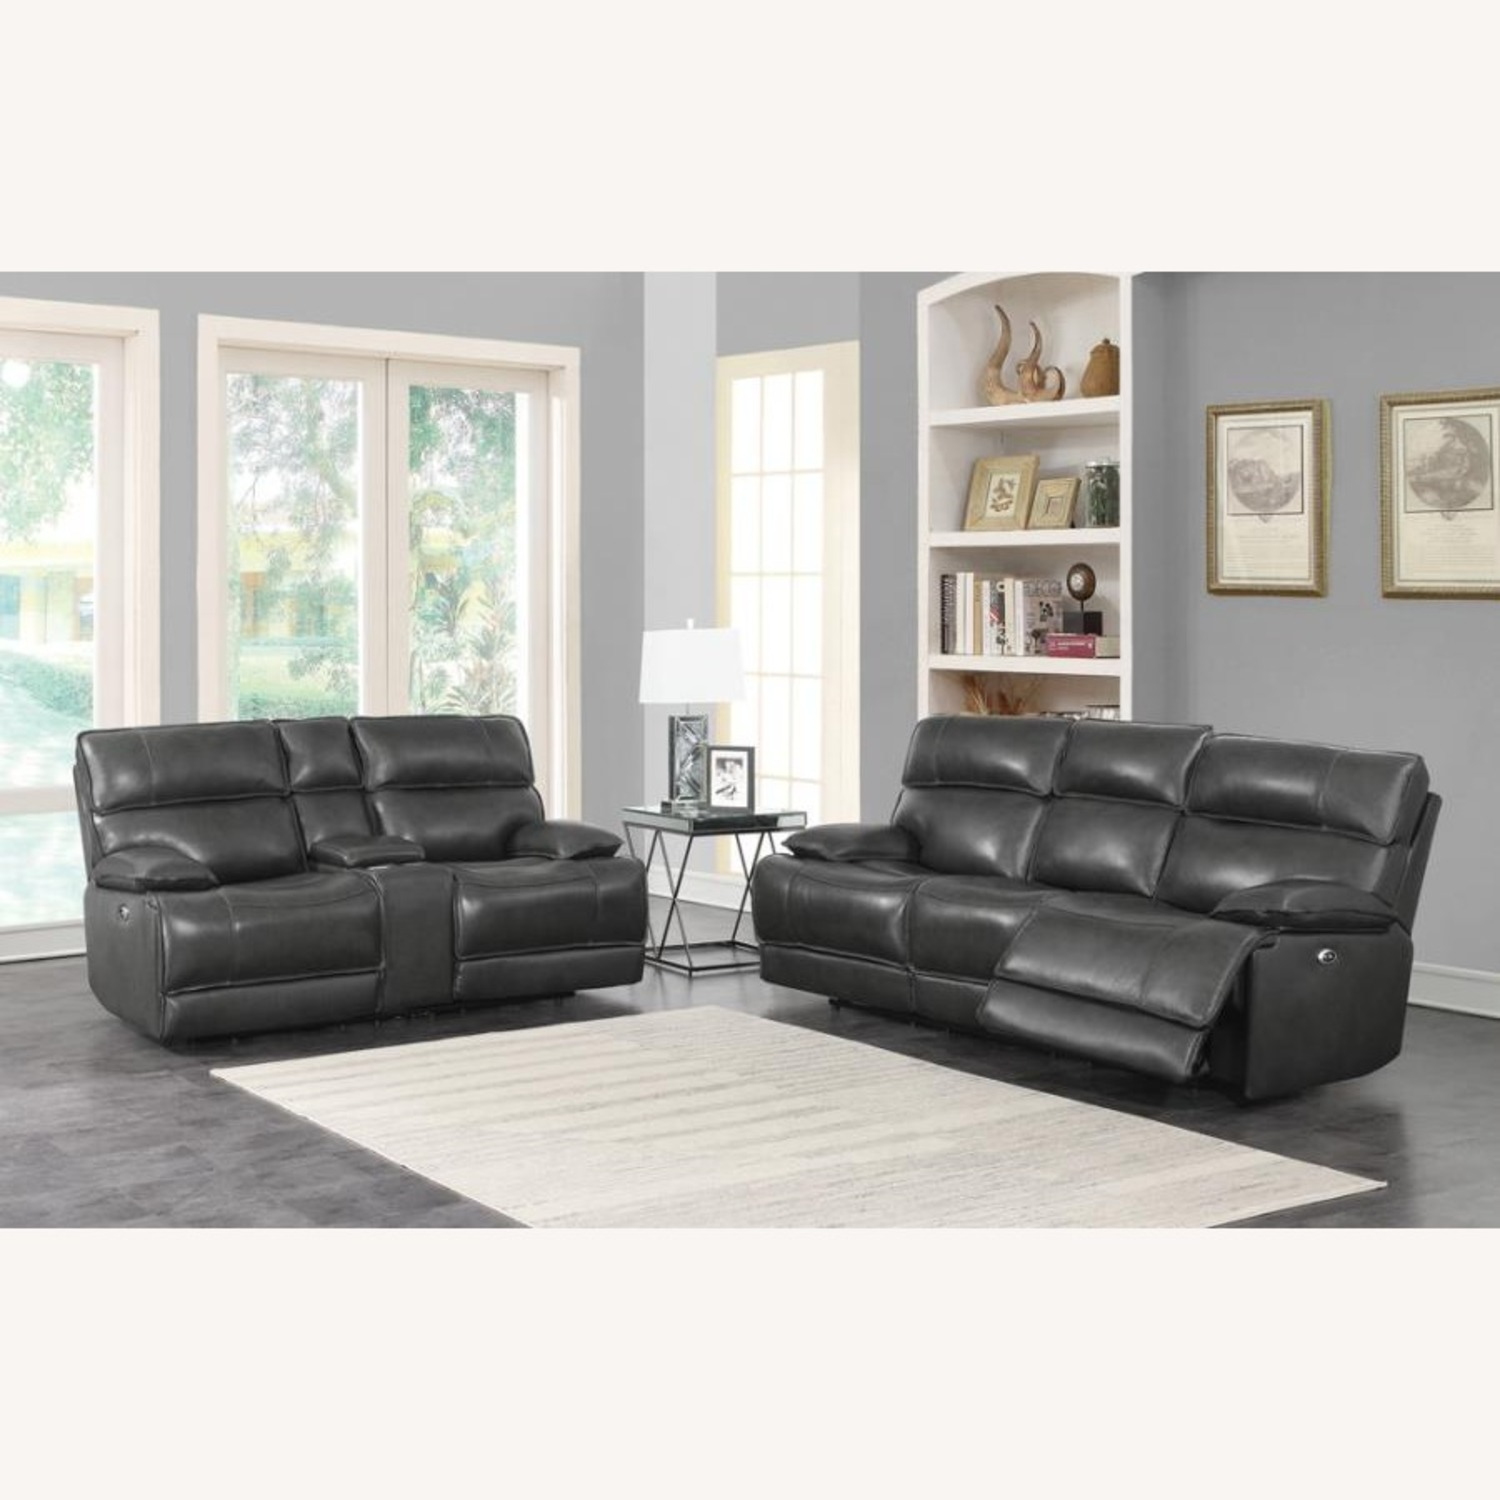 Power Recline Loveseat In Charcoal Leather - image-10